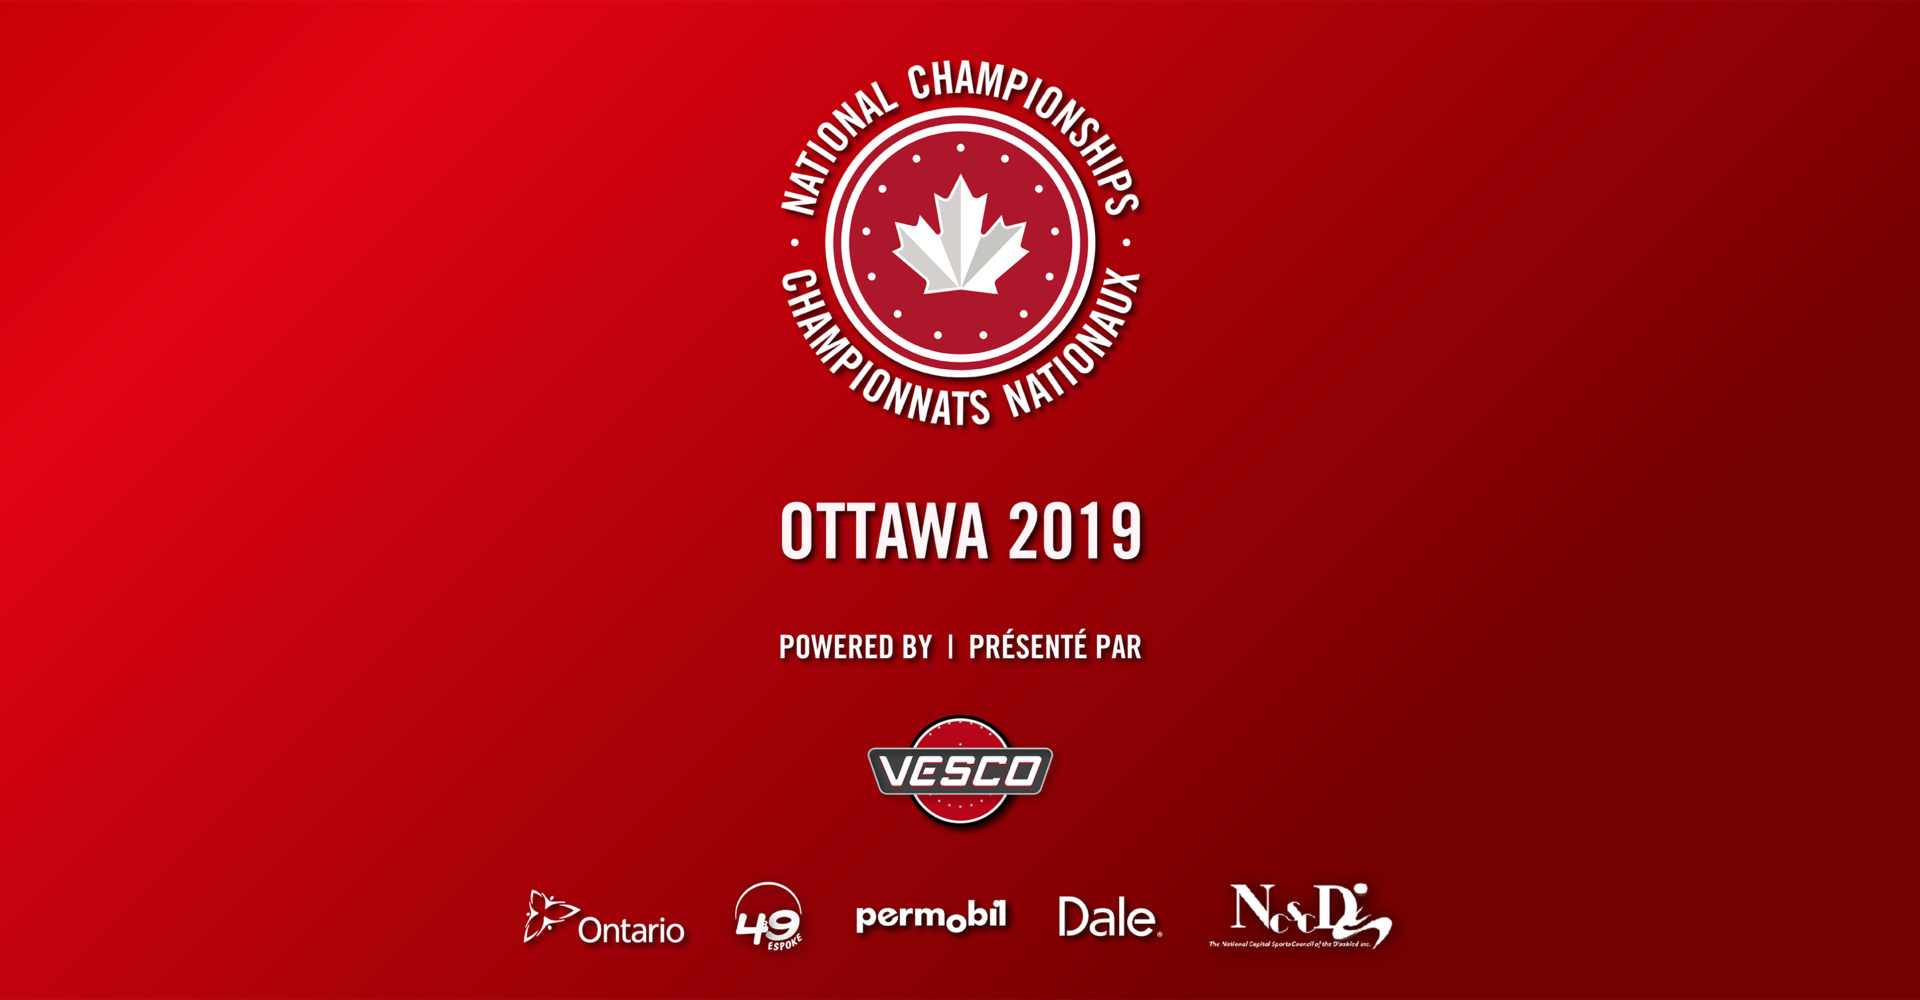 OTTAWA TO HOST THE 2019 NATIONAL CHAMPIONSHIPS – POWERED BY VESCO